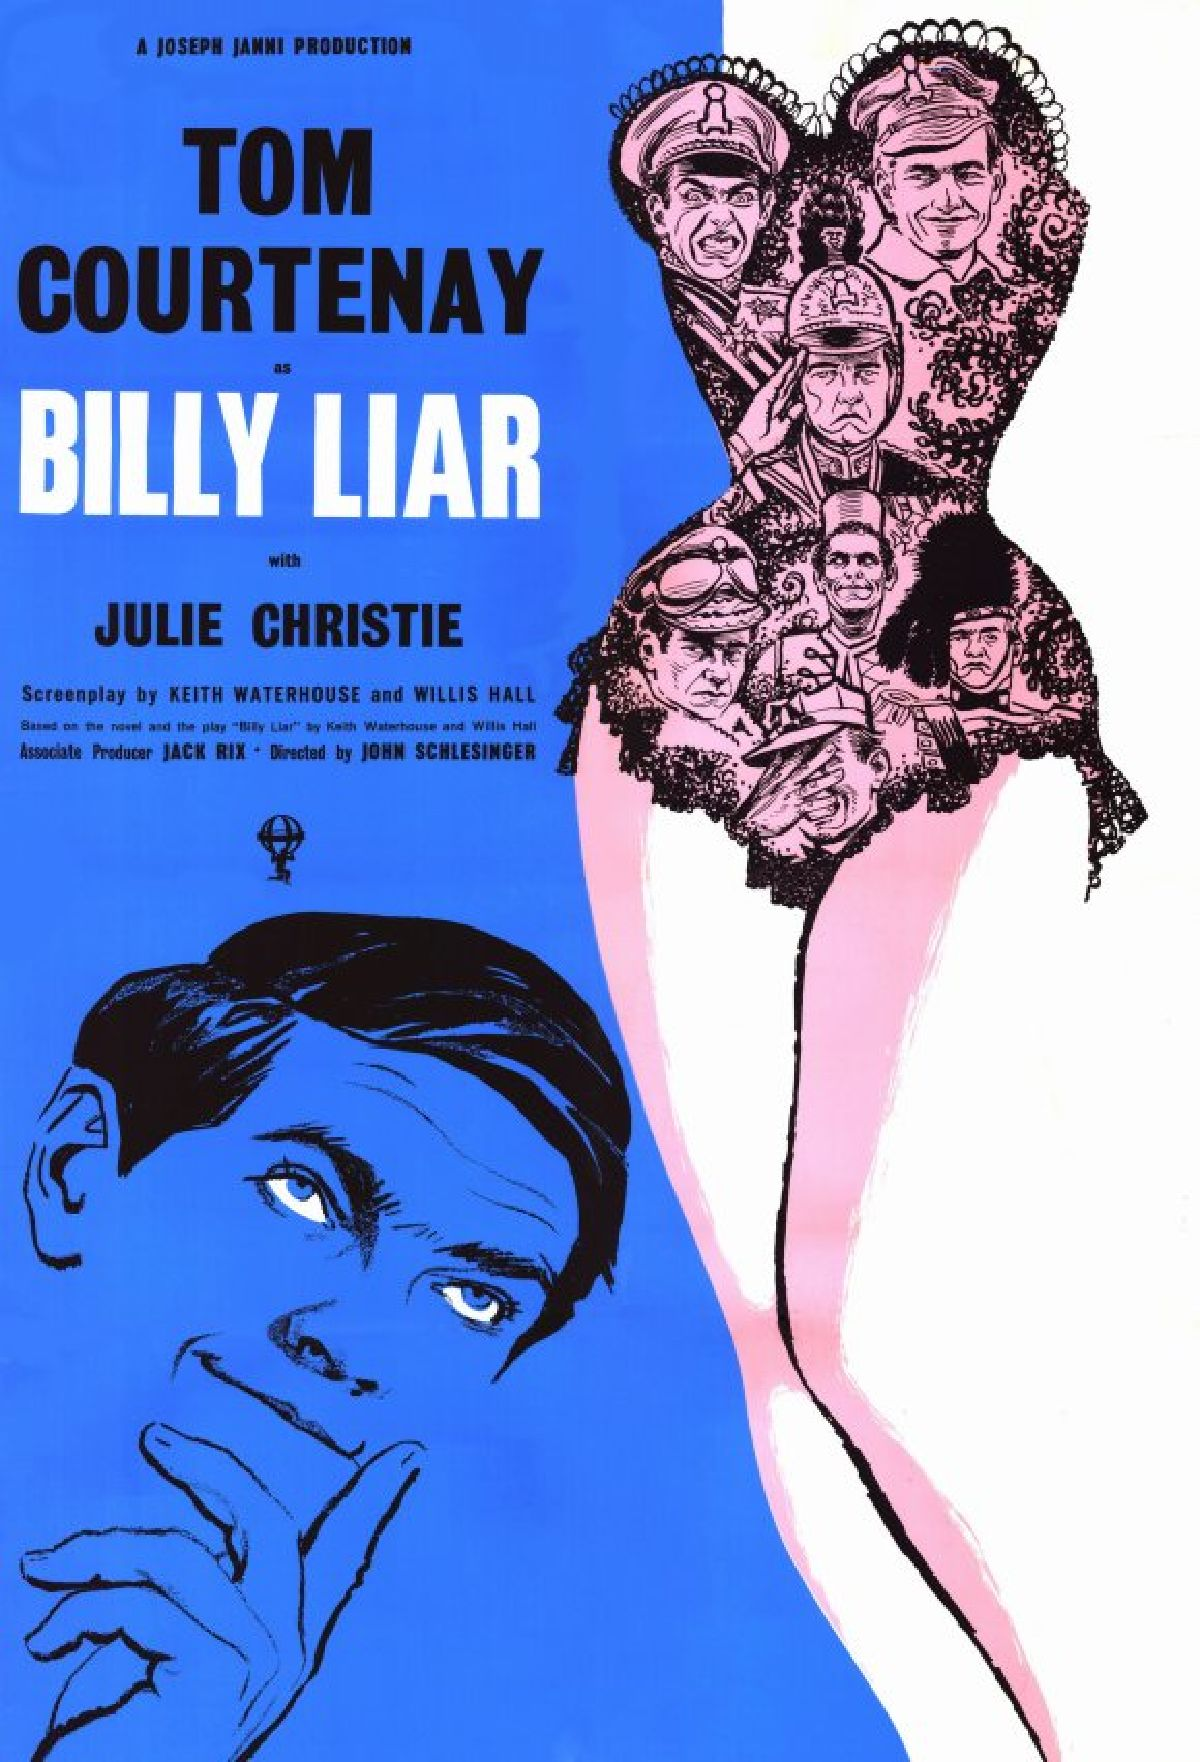 'Billy Liar' movie poster